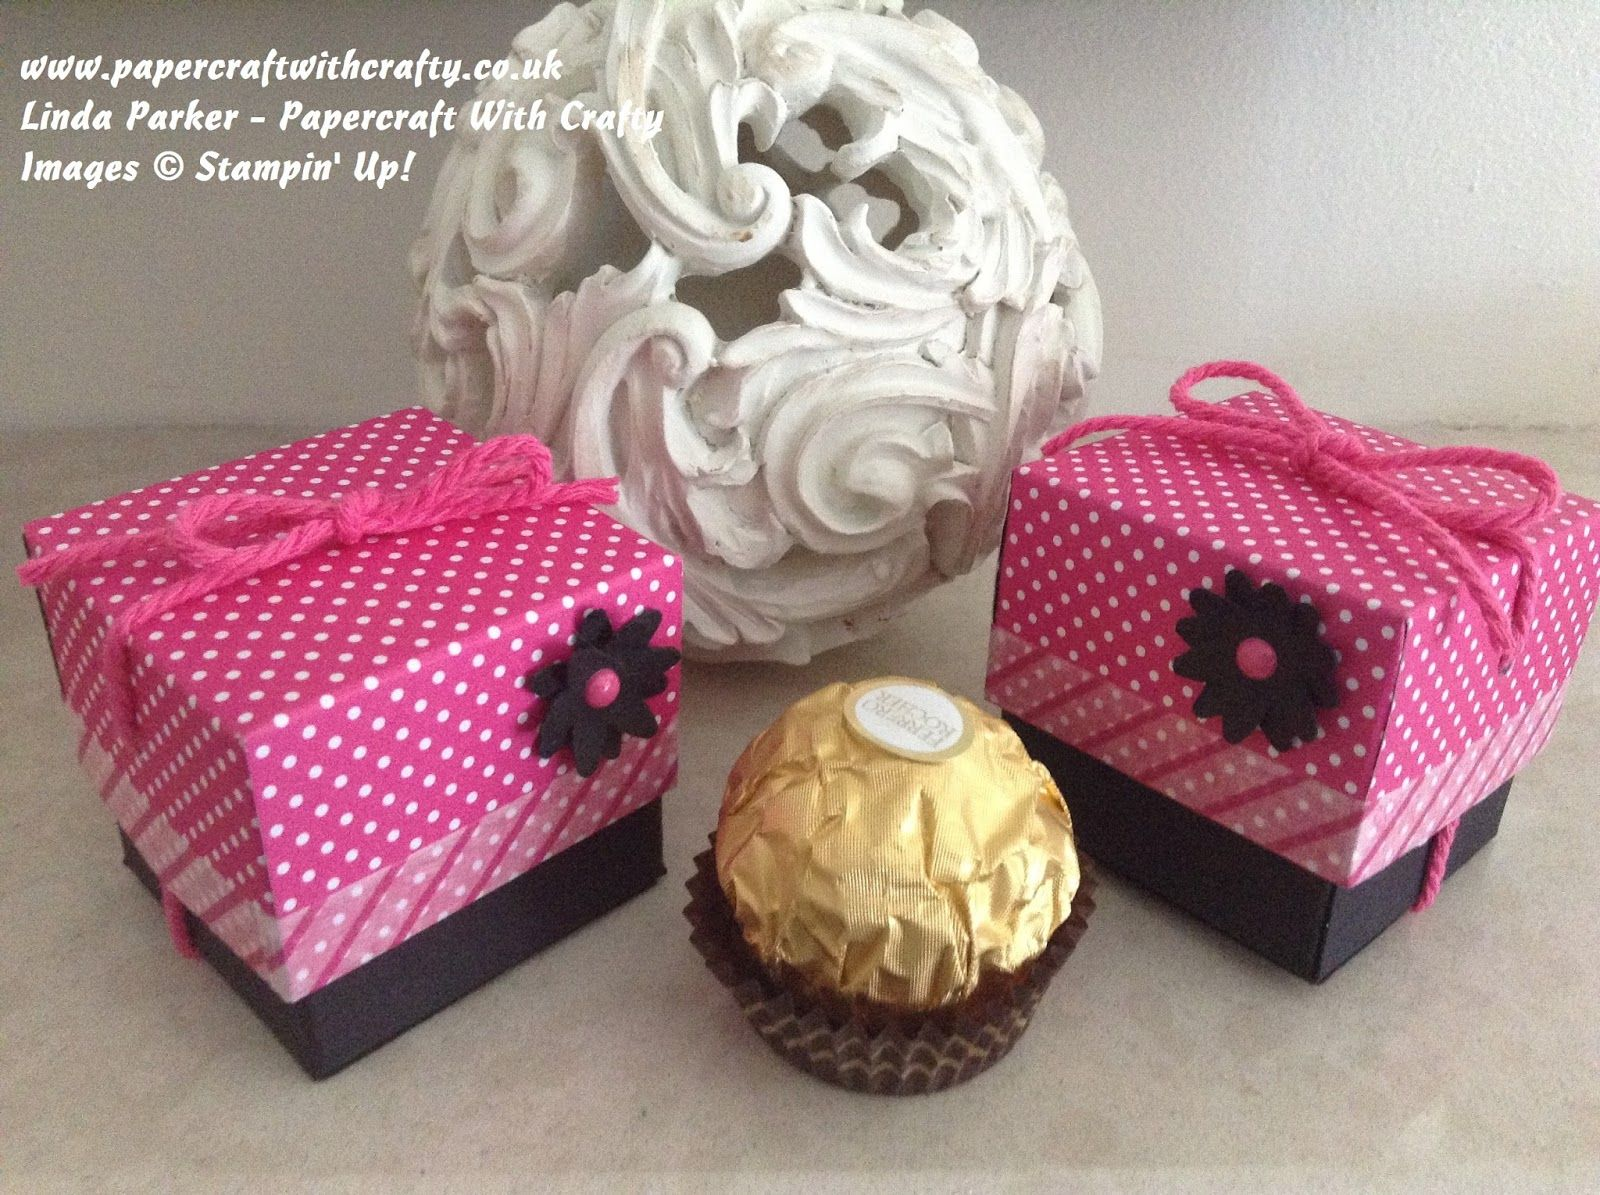 Papercraft With Crafty: Tiny Ferrero Rocher Treat Box with a Pop of ...